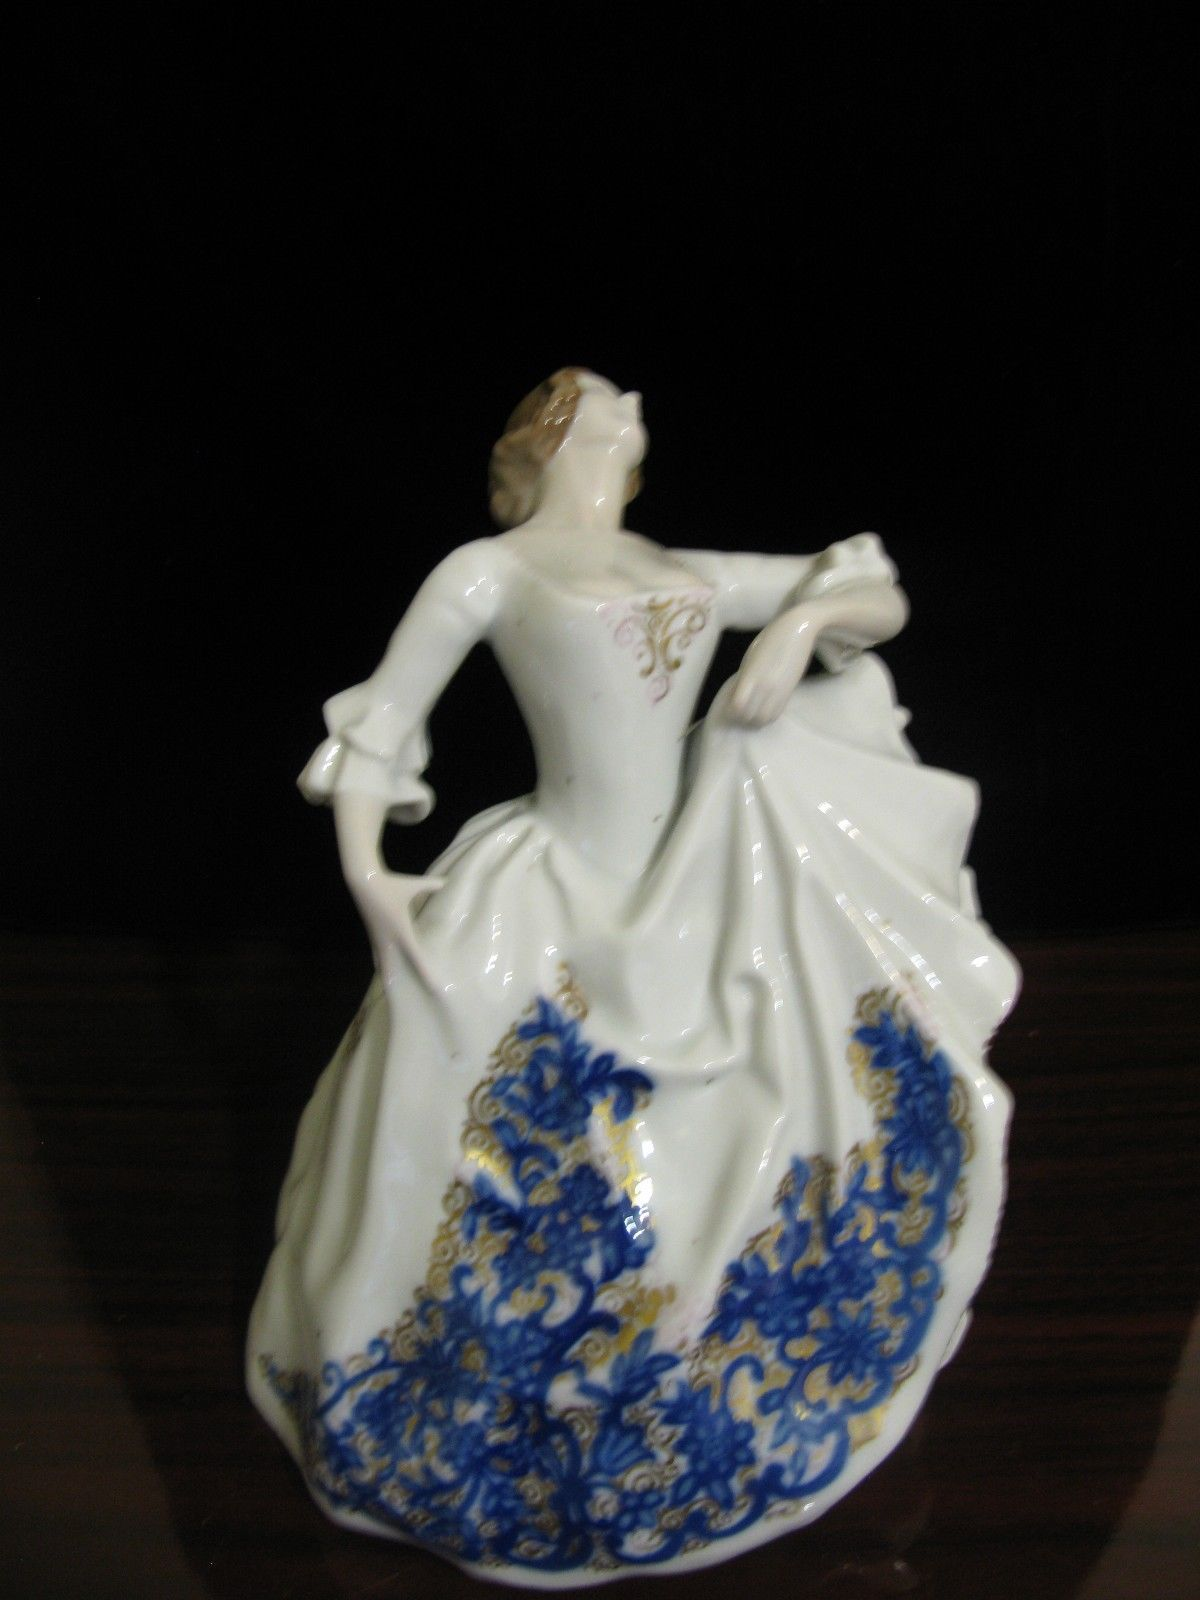 "Primary image for Antique Rosenthal Porcelain Figure Figurine Lady Dancer 8 1/2"" Marked circa 1922"